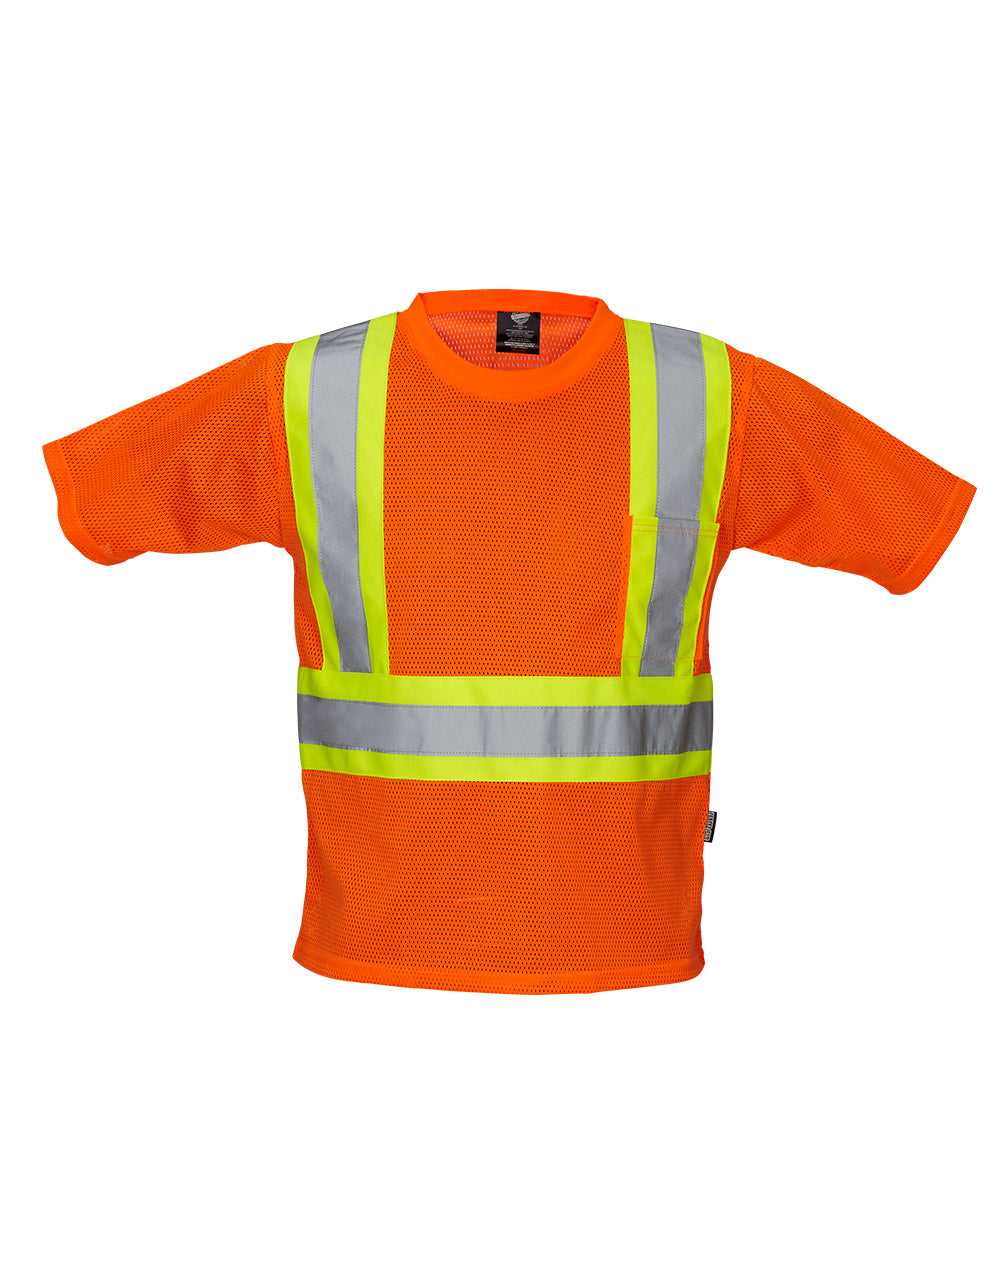 Orange Mesh CSA Safety T-shirt